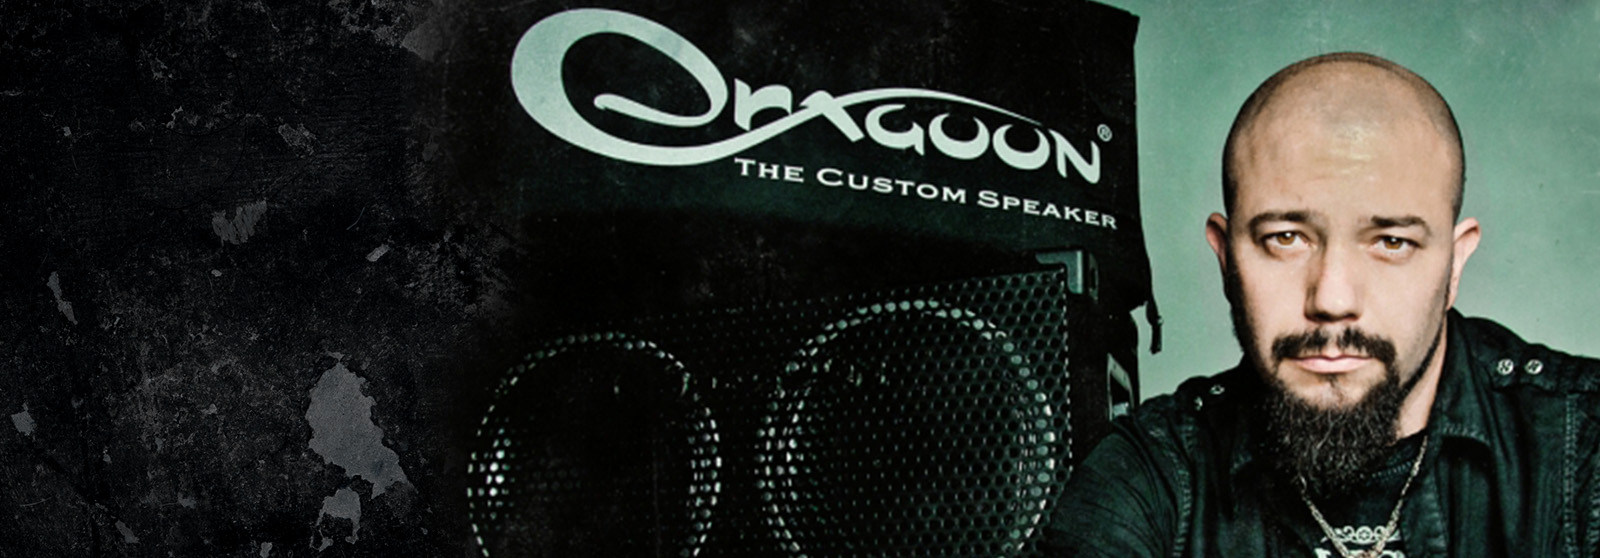 Dragoon - The Custom Speaker - DRAGOON-HANDCRAFTED-IN-FLORENCE_20160225225711774821.jpg